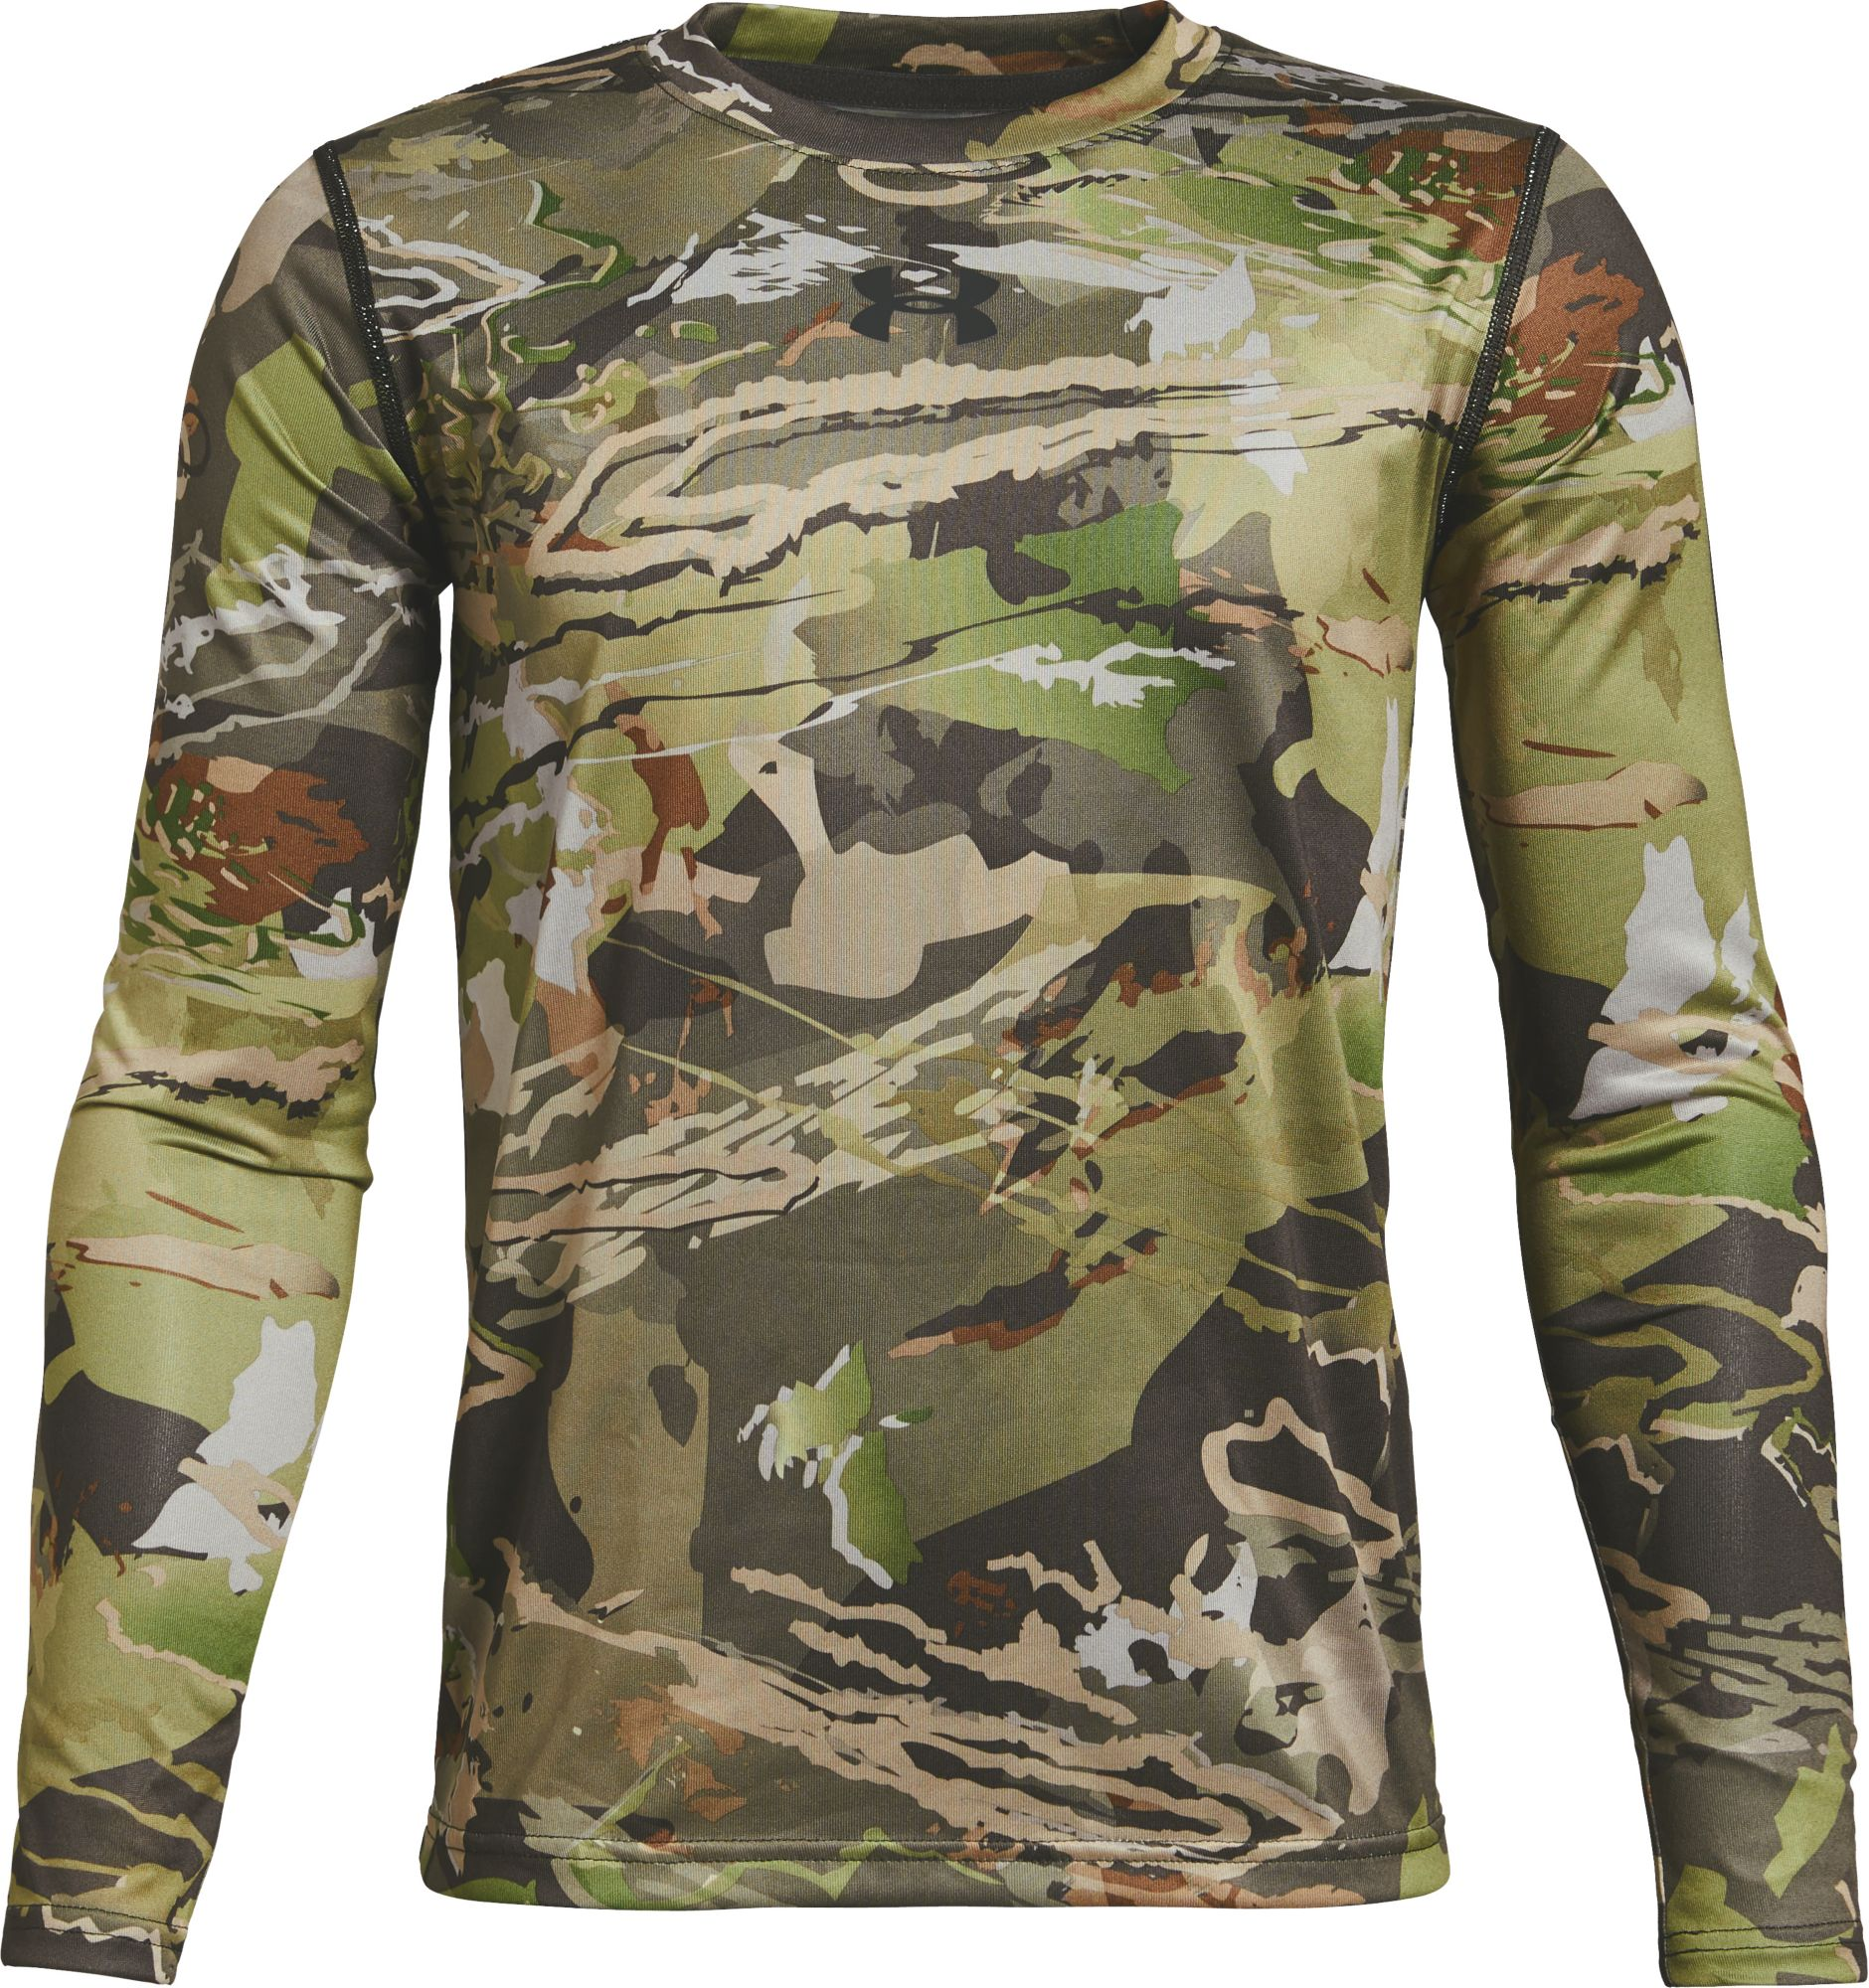 Under Armour Youth Early Season Long Sleeve Technical Shirt, Size: Small, Green thumbnail